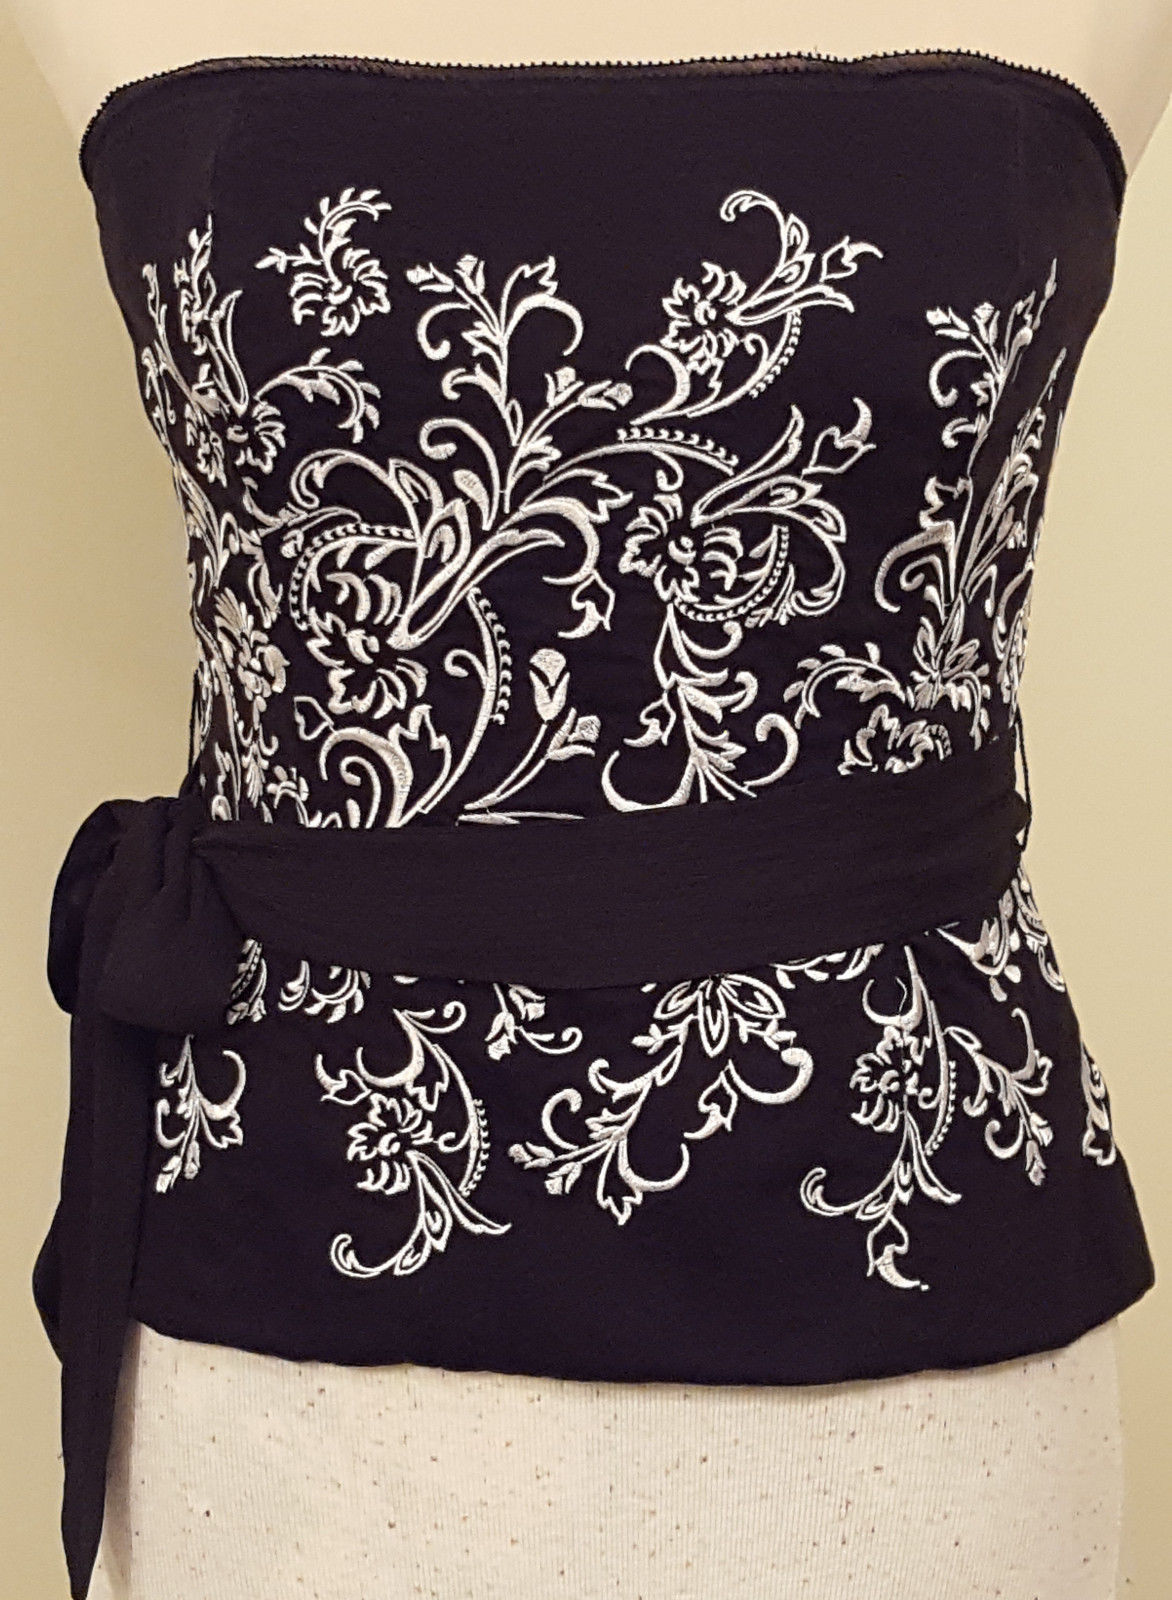 WHITE HOUSE | BLACK MARKET RN 111459 Floral Embroidered Bustier with Sash Size 6 - $38.85